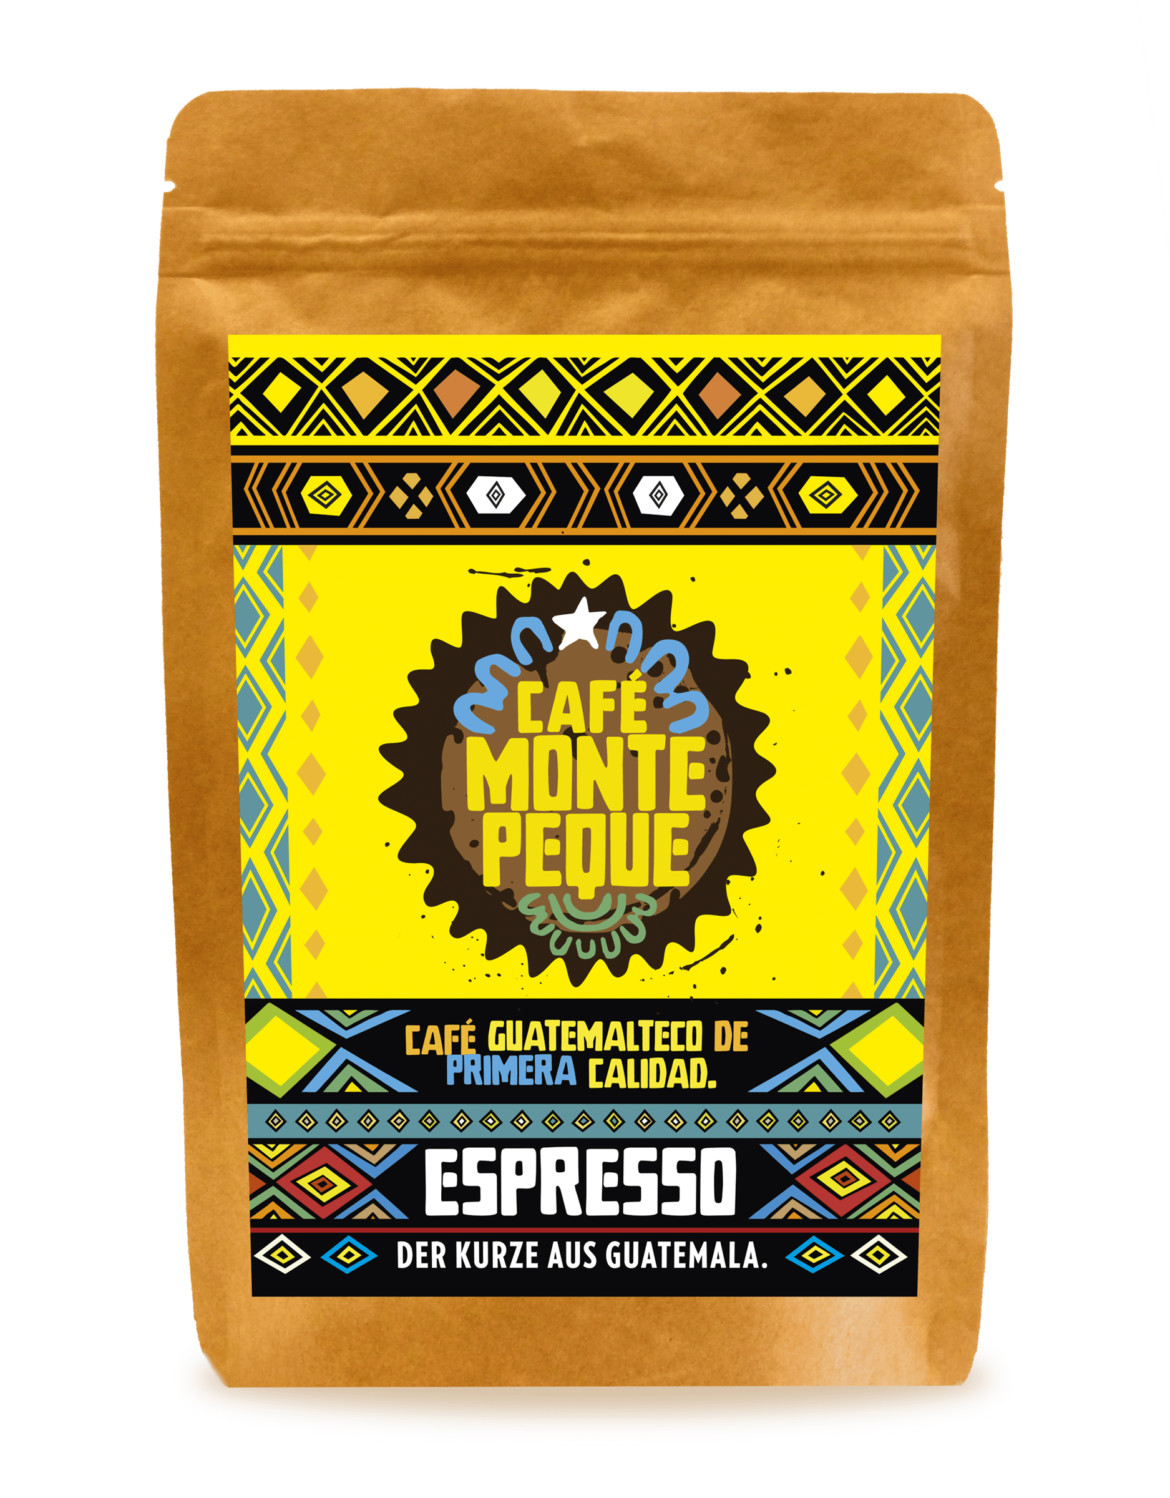 Café Montepeque Verpackung